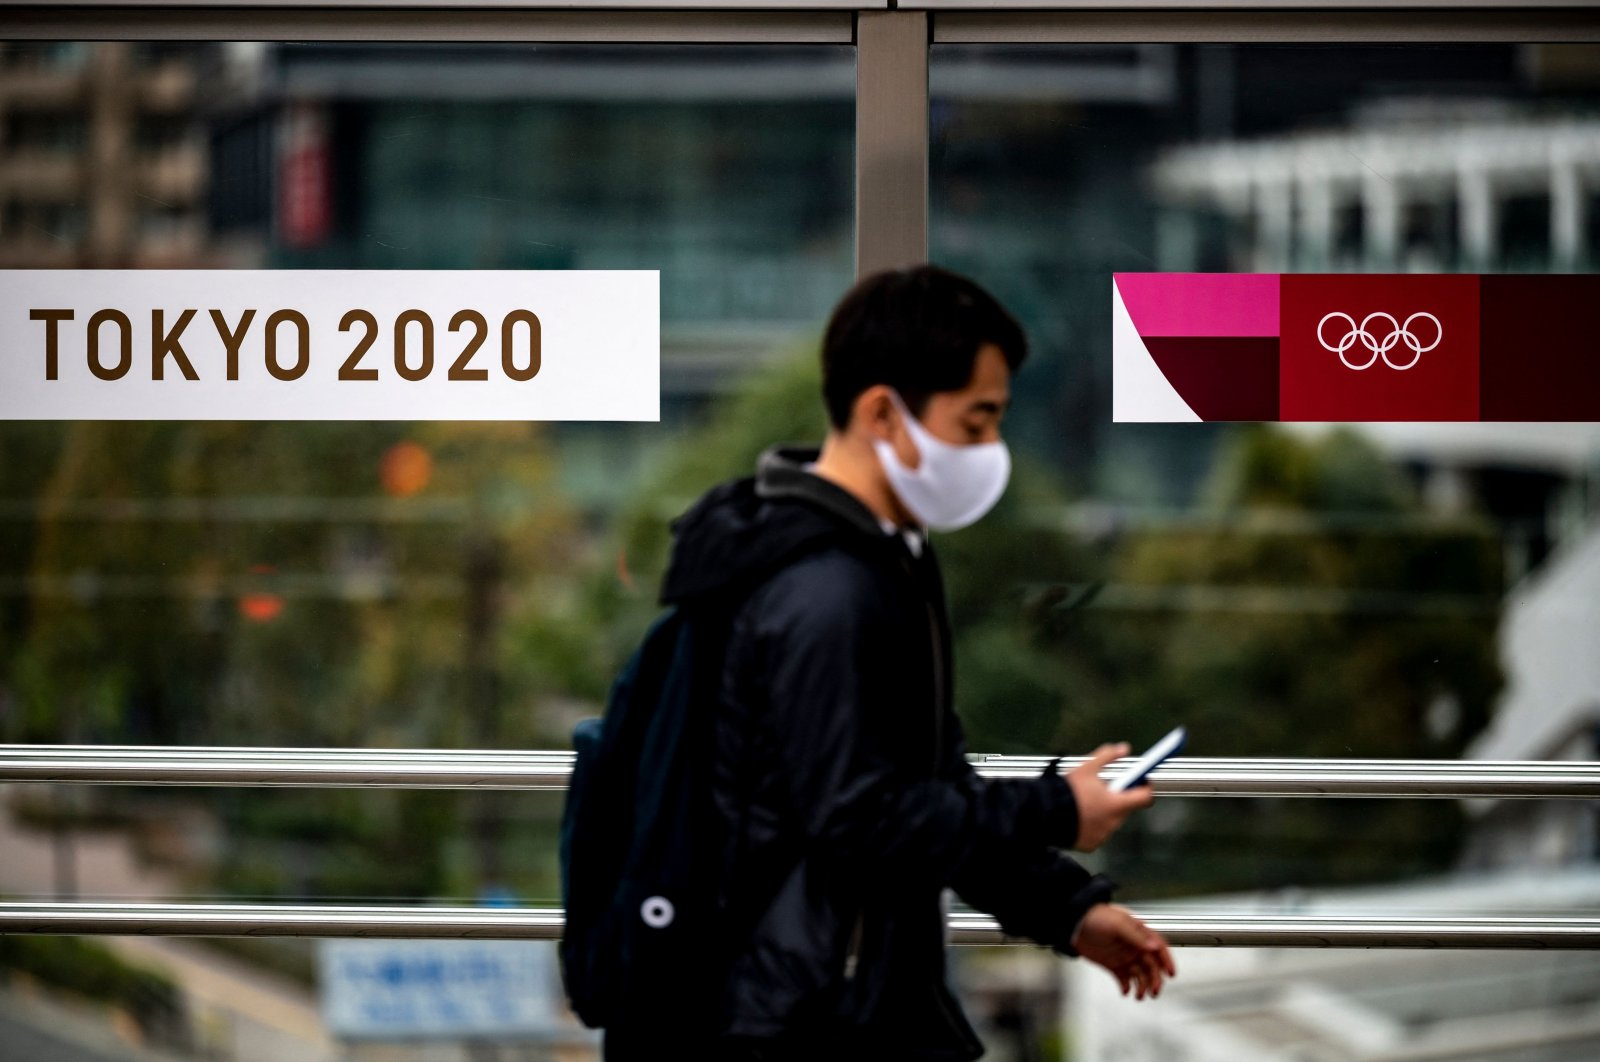 A man walks past logos of the Tokyo 2020 Olympic Games banners in Tokyo, Japan, March 20, 2021. (AFP Photo)